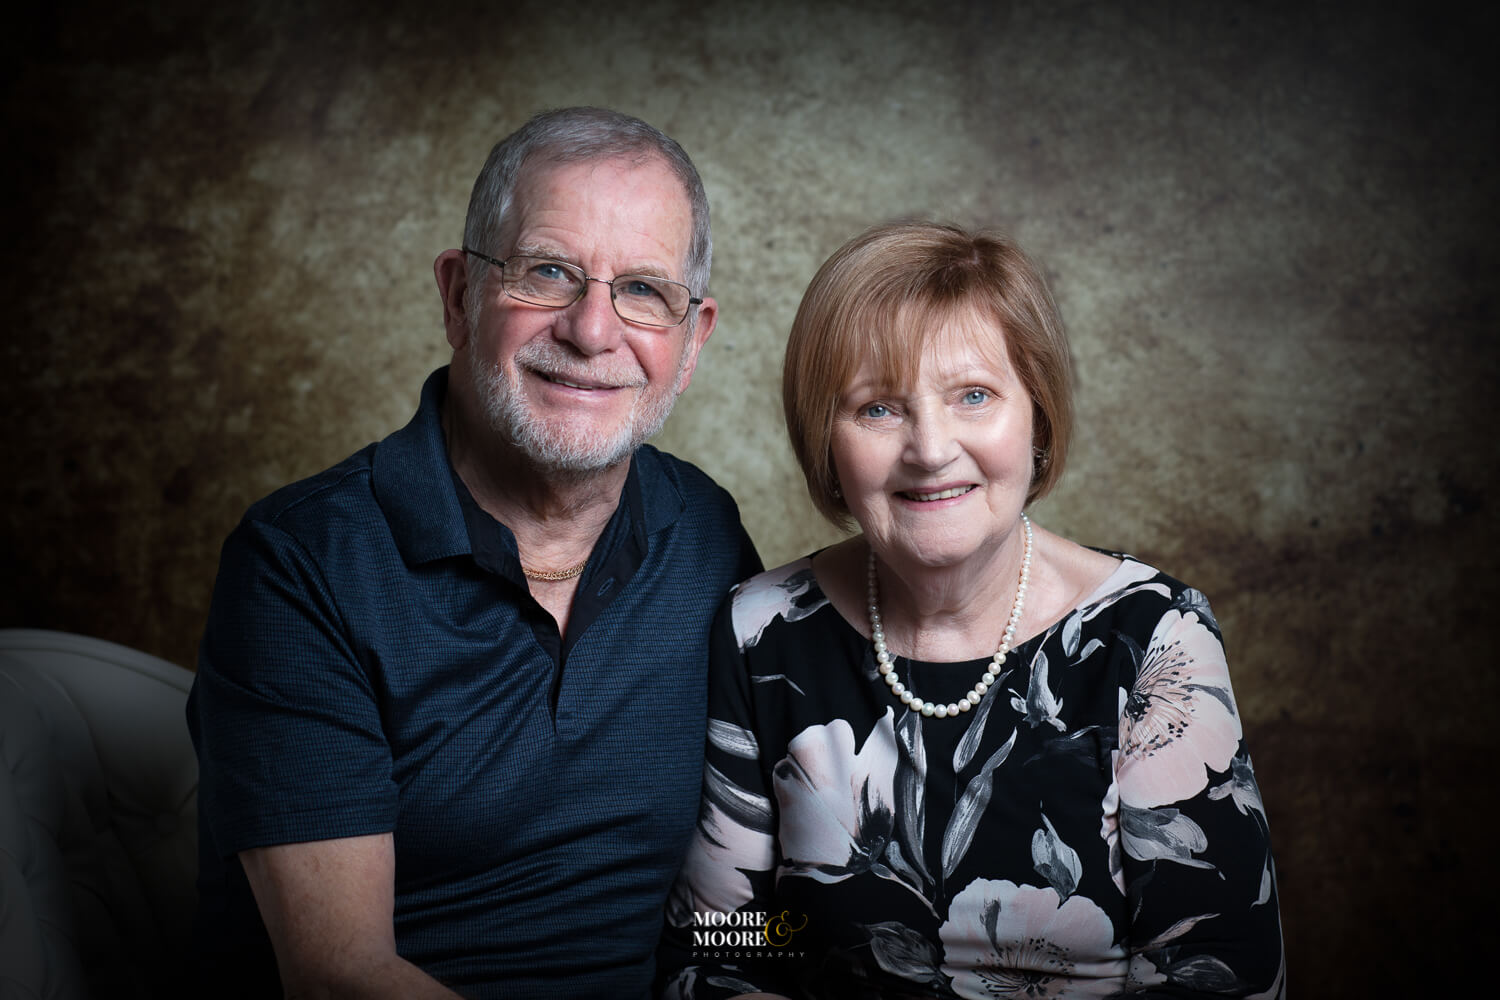 parent-portraits-photography-by-moore-moore-photography-fleet-hampshire-4